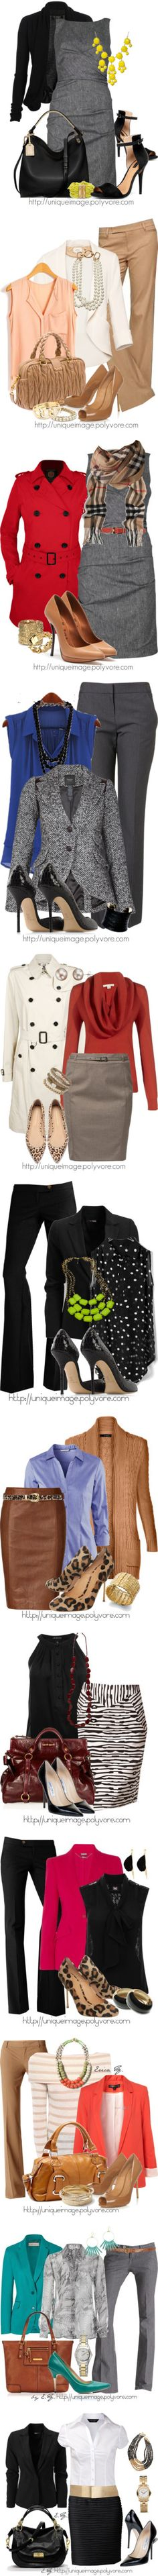 Love the gray dress with the yellow accents and the black bag in outfit one. Second outfit is great too, not sure about the pearls. Lots if great work outfit ideas. Business Outfits, Business Attire, Business Fashion, Business Clothes, Business Style, Estilo Fashion, Ideias Fashion, Mode Style, Style Me